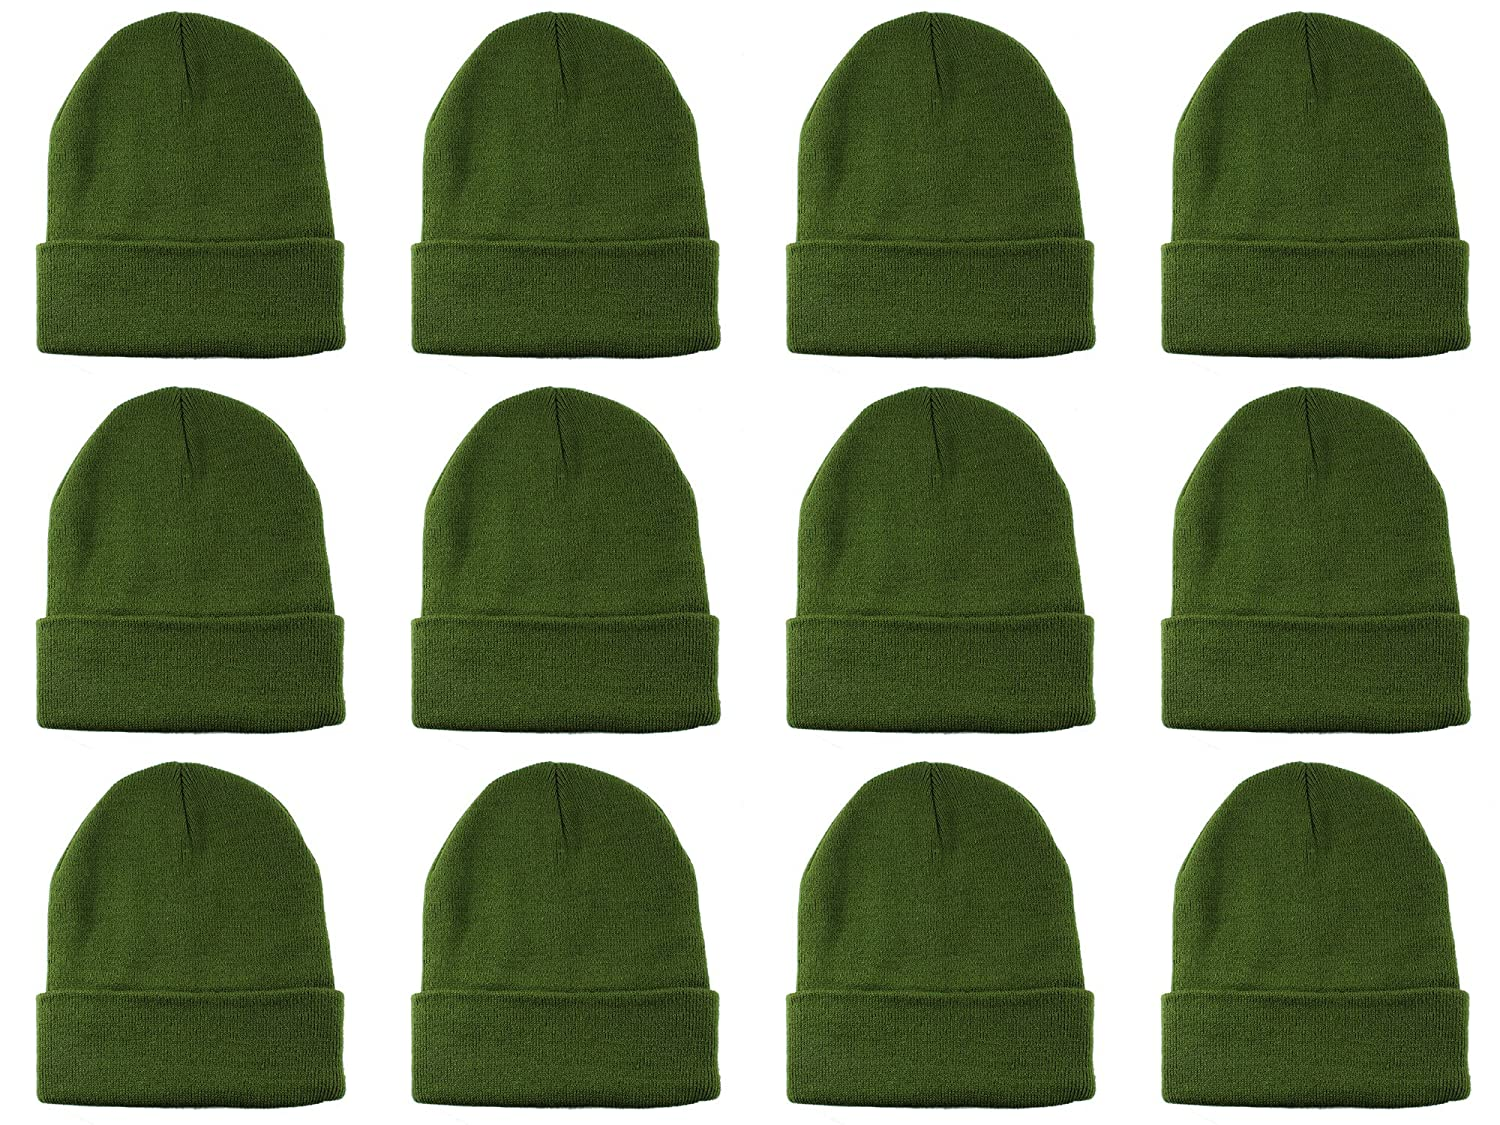 0b68c592688 Gelante Unisex Beanie Cap Knitted Warm Solid Color Multi-Packs (12 Pack   Olive Green) at Amazon Men s Clothing store